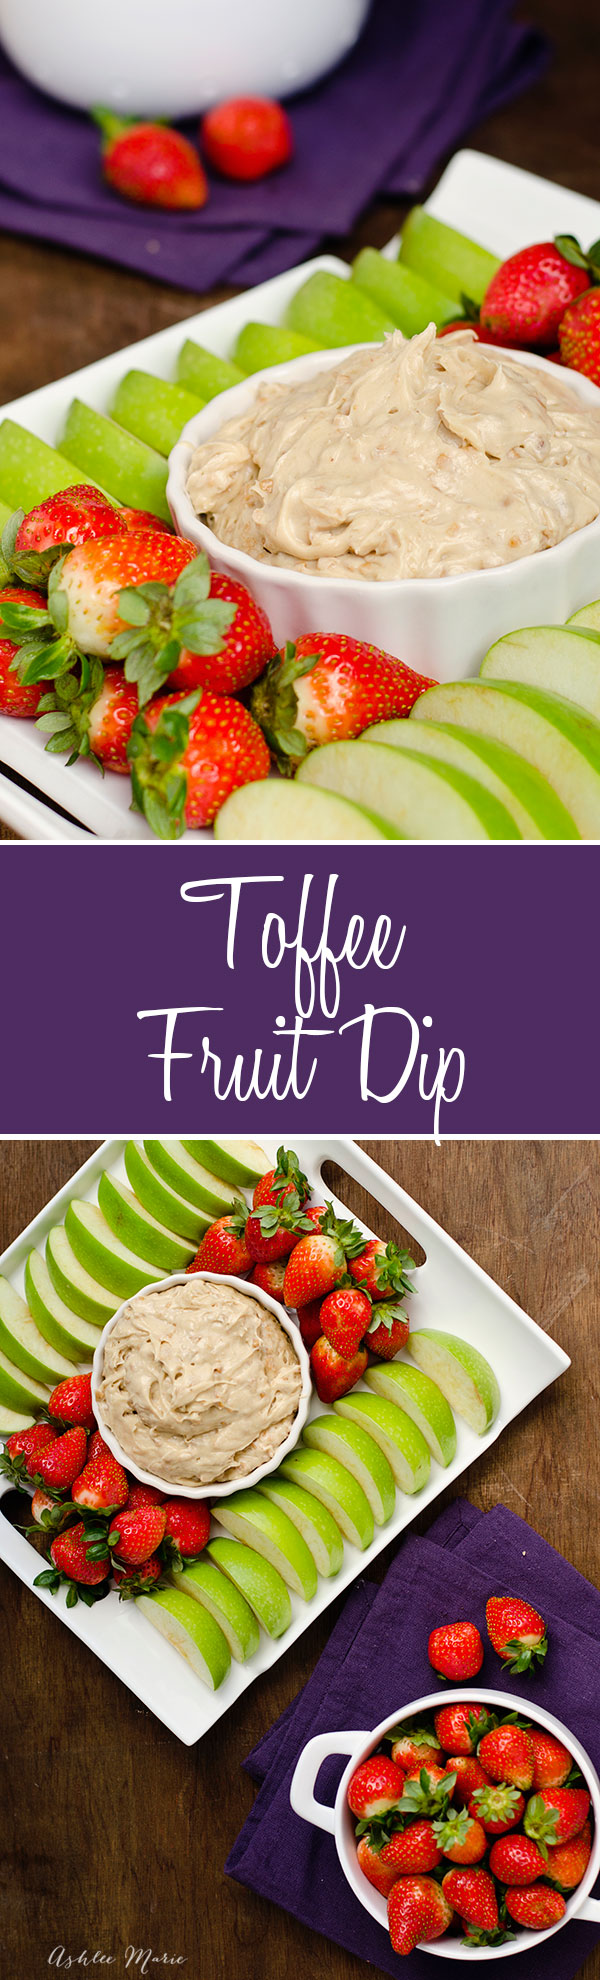 this toffee fruit dip is sweet and delicious.  the toffee bits add a great crunch that is oh so good with apples, bananas, strawberries and other fruits